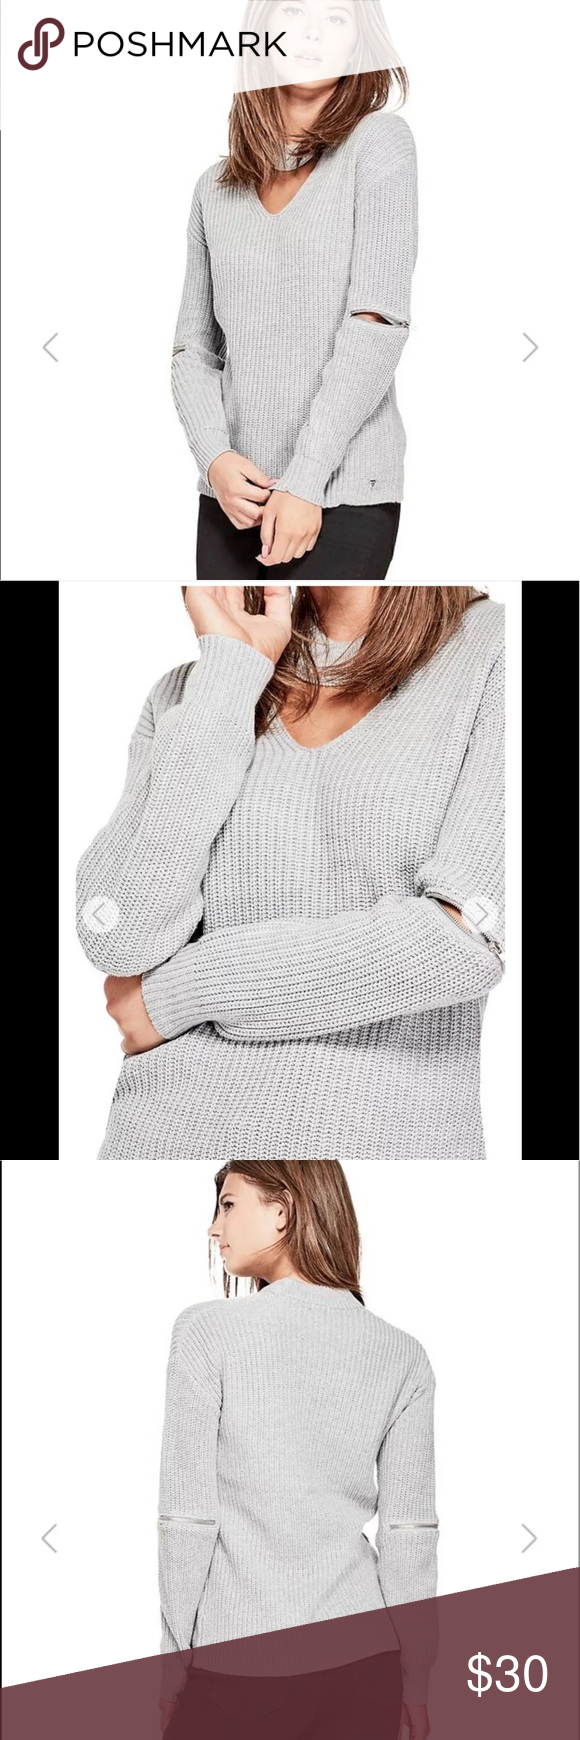 """121f80866ac61 Guess """"Maya"""" cut out sweater Guess """"Maya"""" cut out sweater in gray. Cut out  v neck choker neckline"""